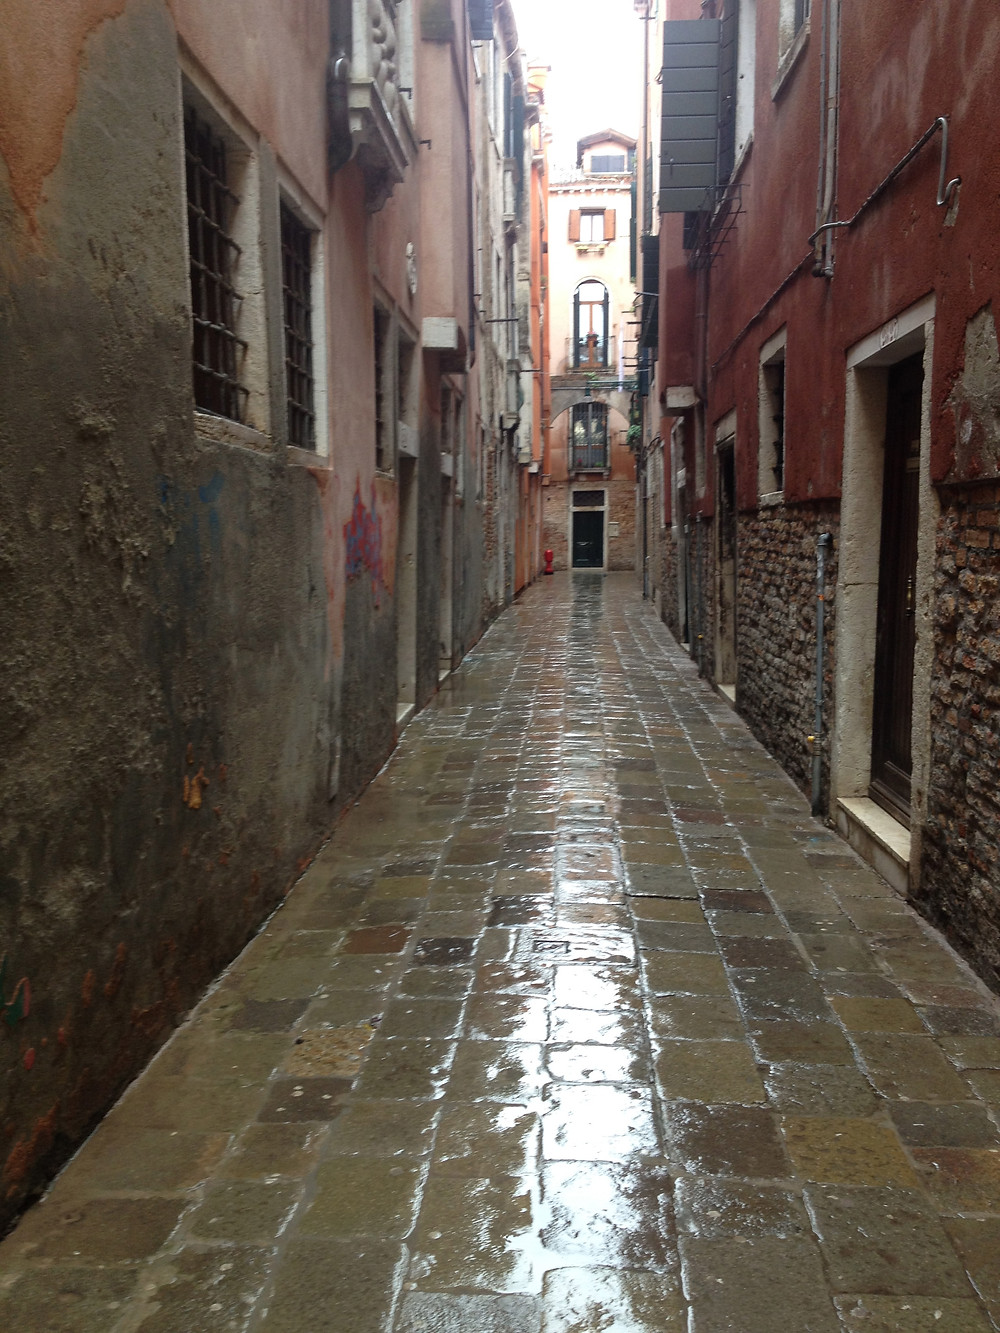 A slick calle in Venice, Italy. Photo by Diana Dinverno